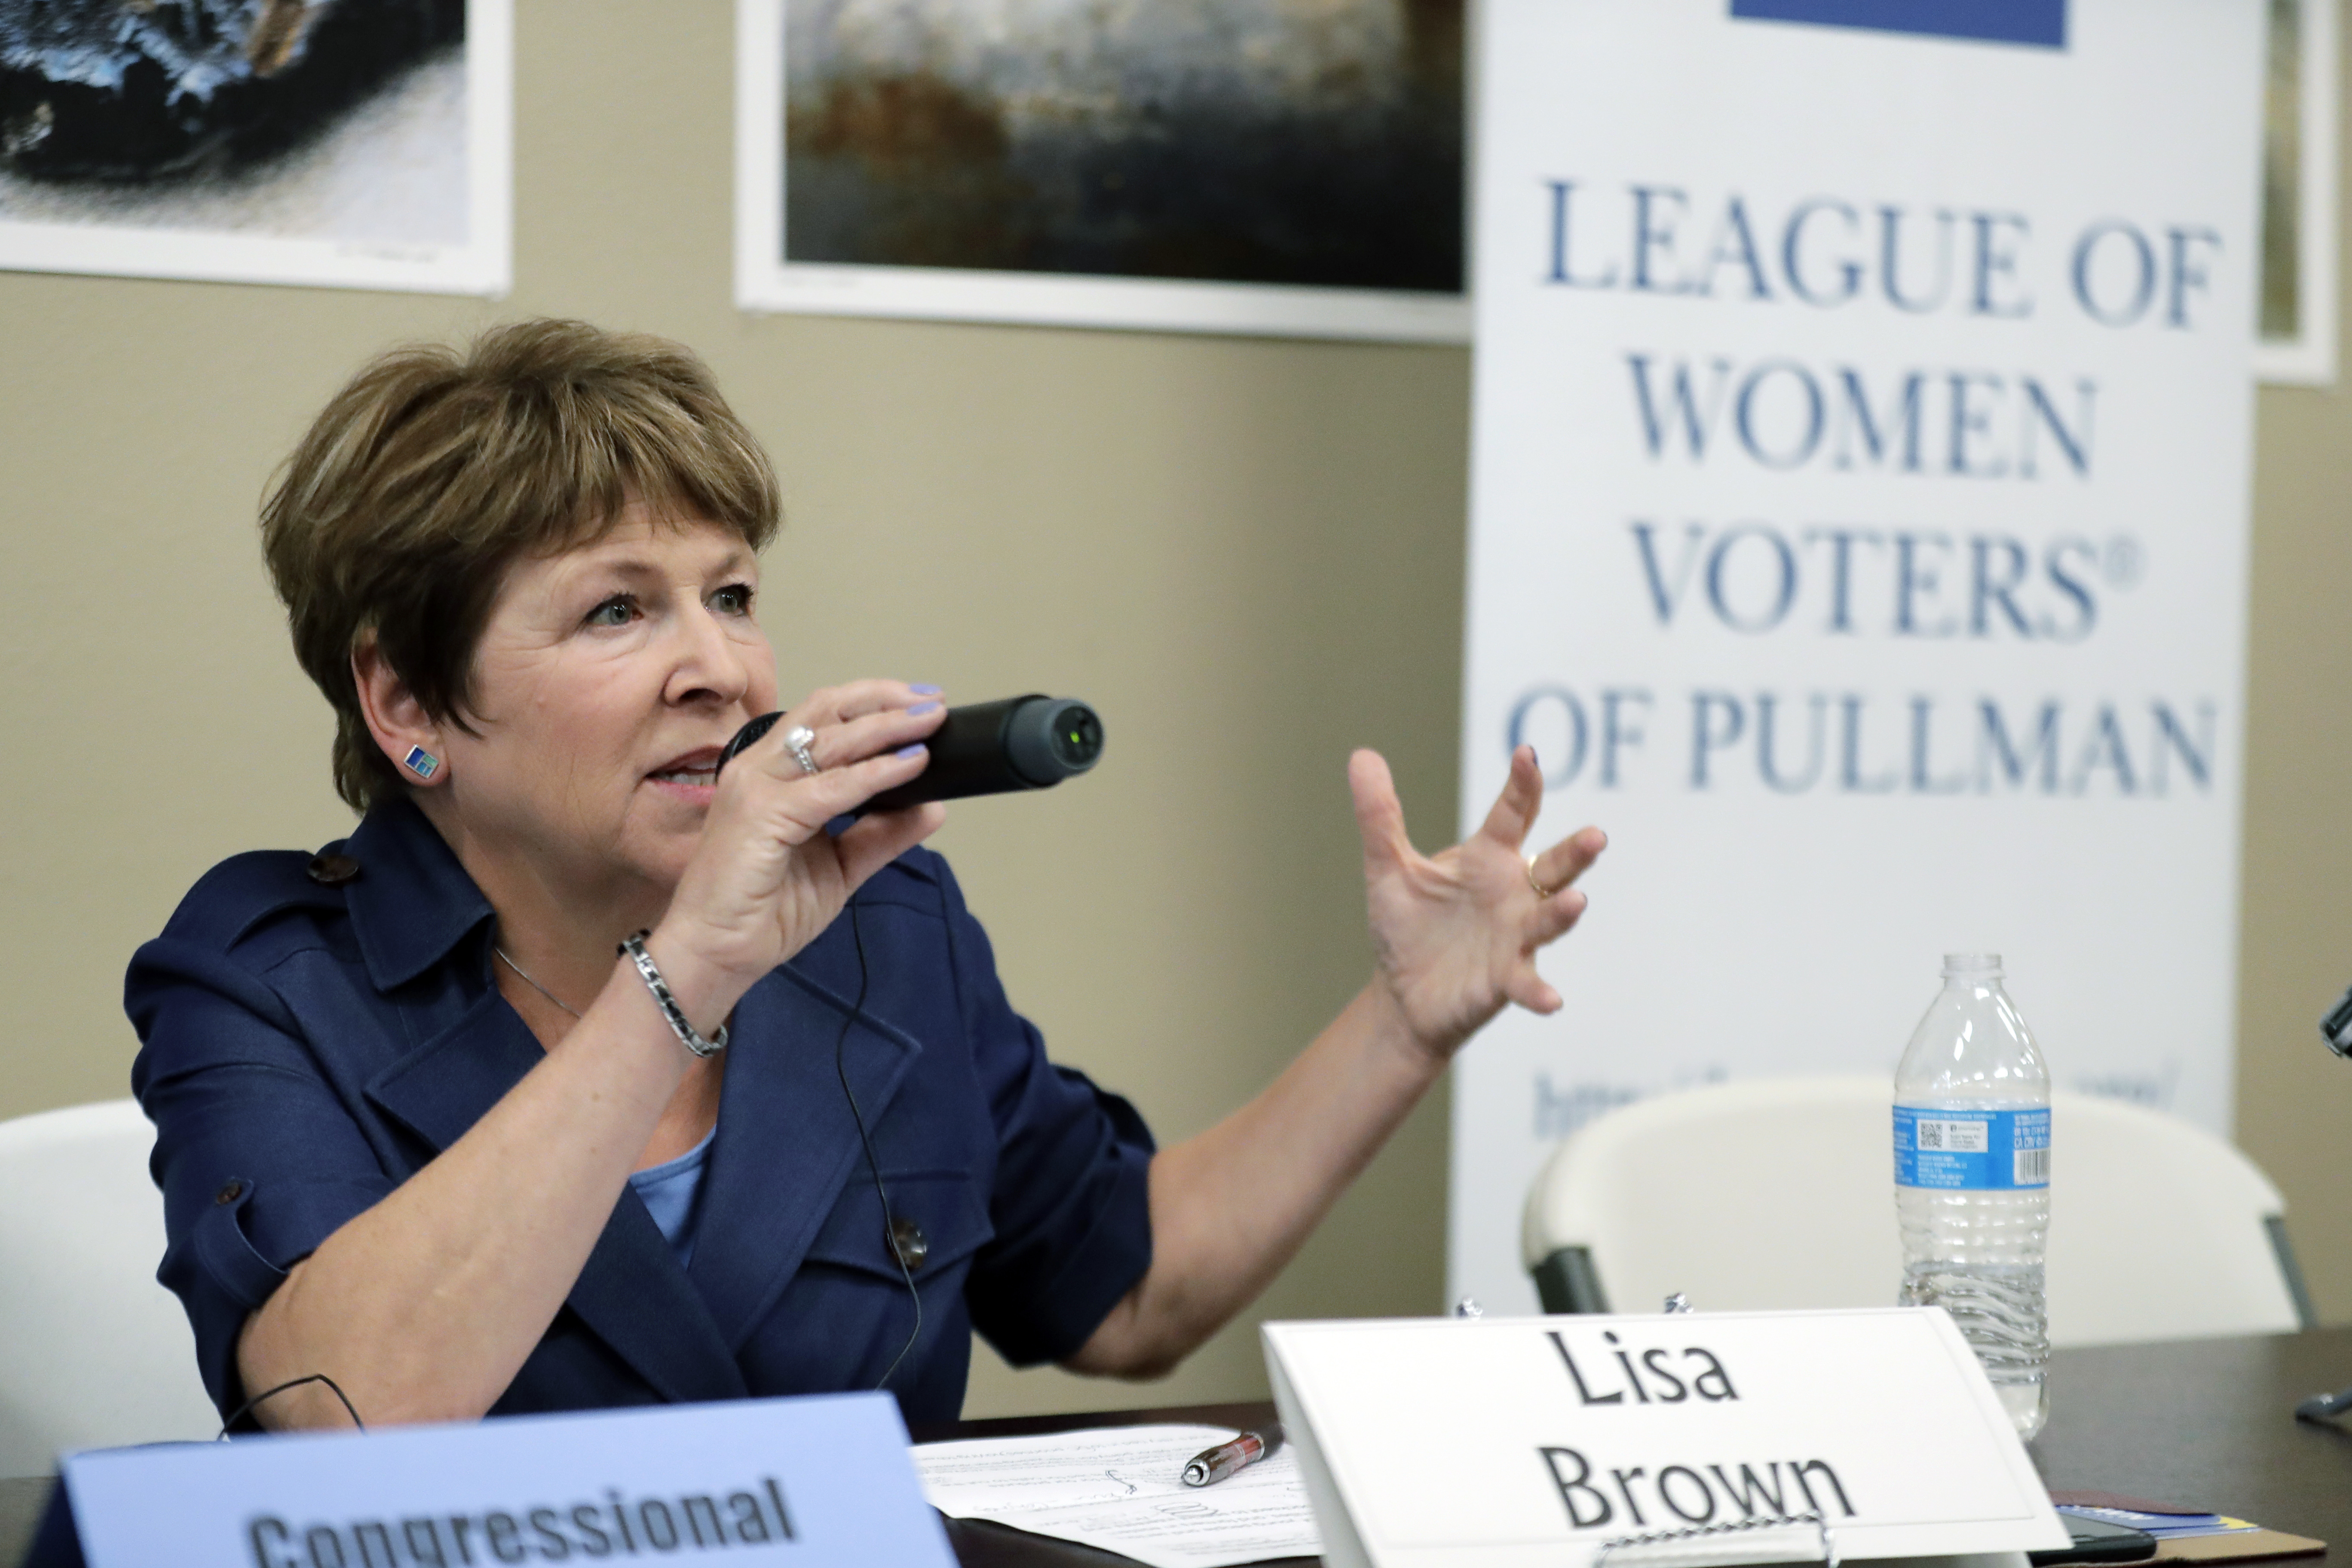 In this photo taken July 17, 2018, Lisa Brown, the presumed Democratic opponent to Republican Rep. Cathy McMorris Rodgers, speaks during a candidates forum in Colfax, Washington.